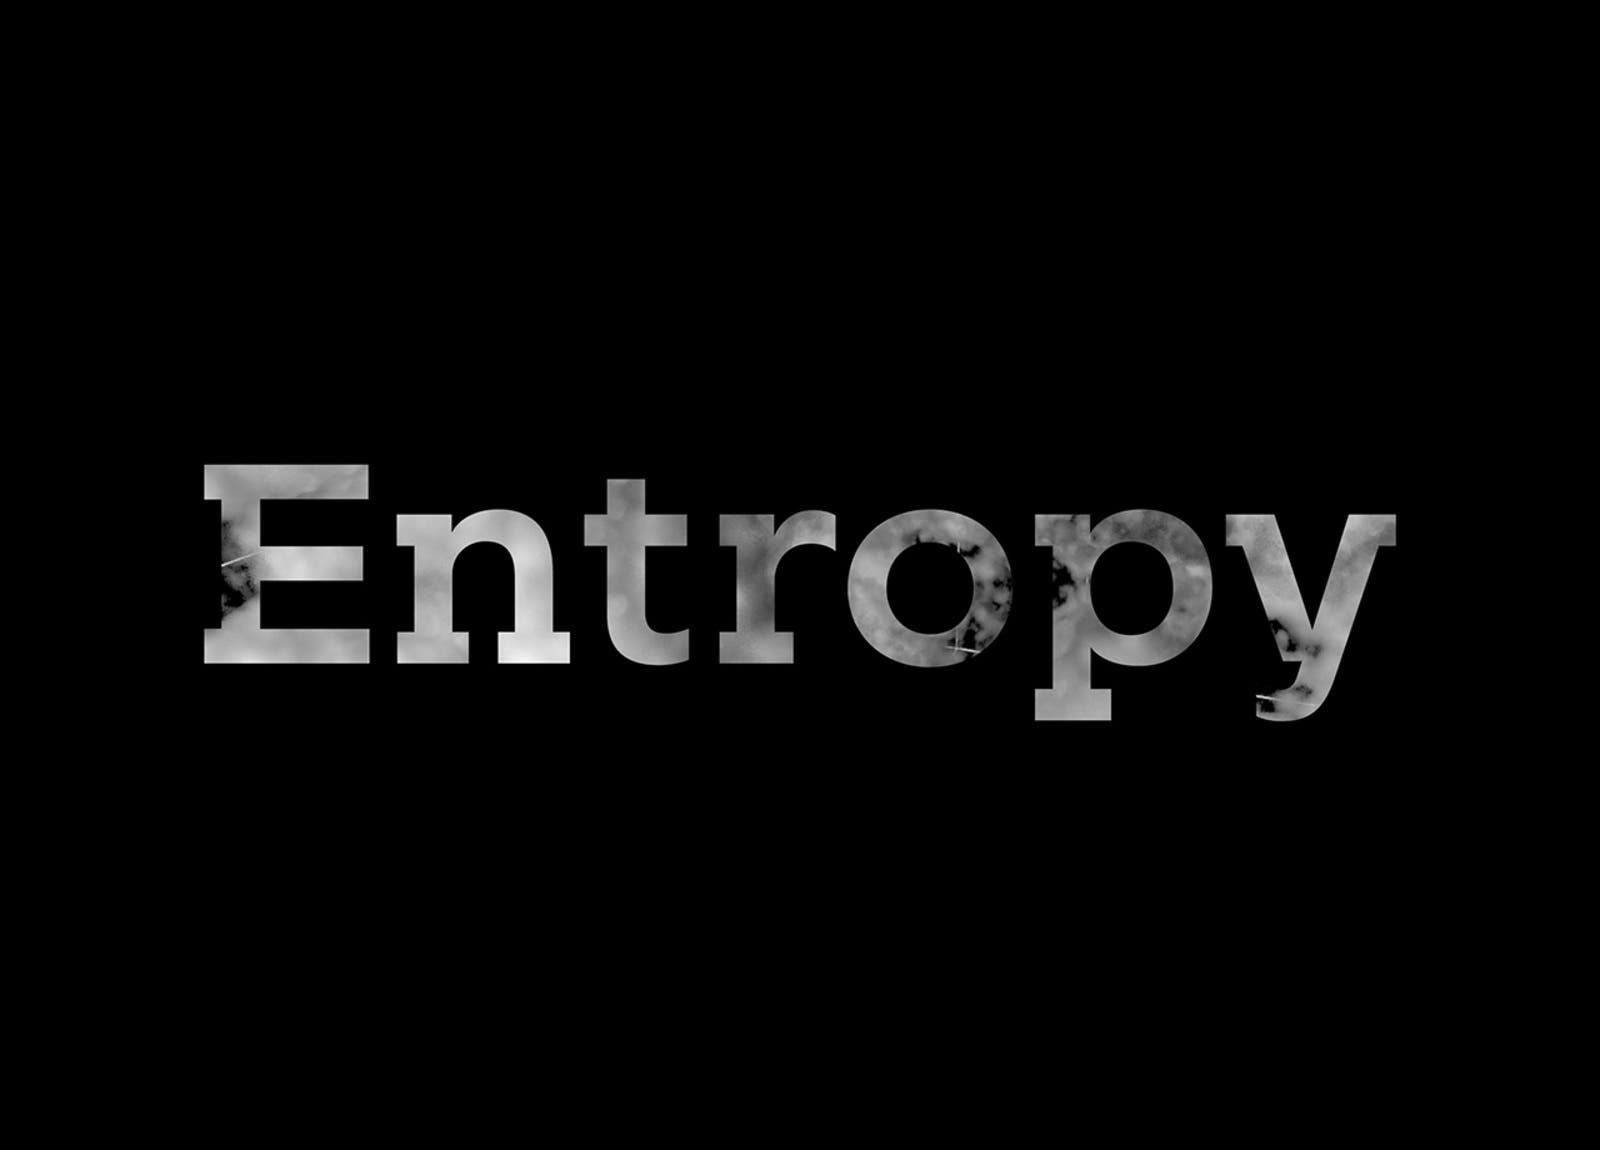 Entropy-visual(1)-web